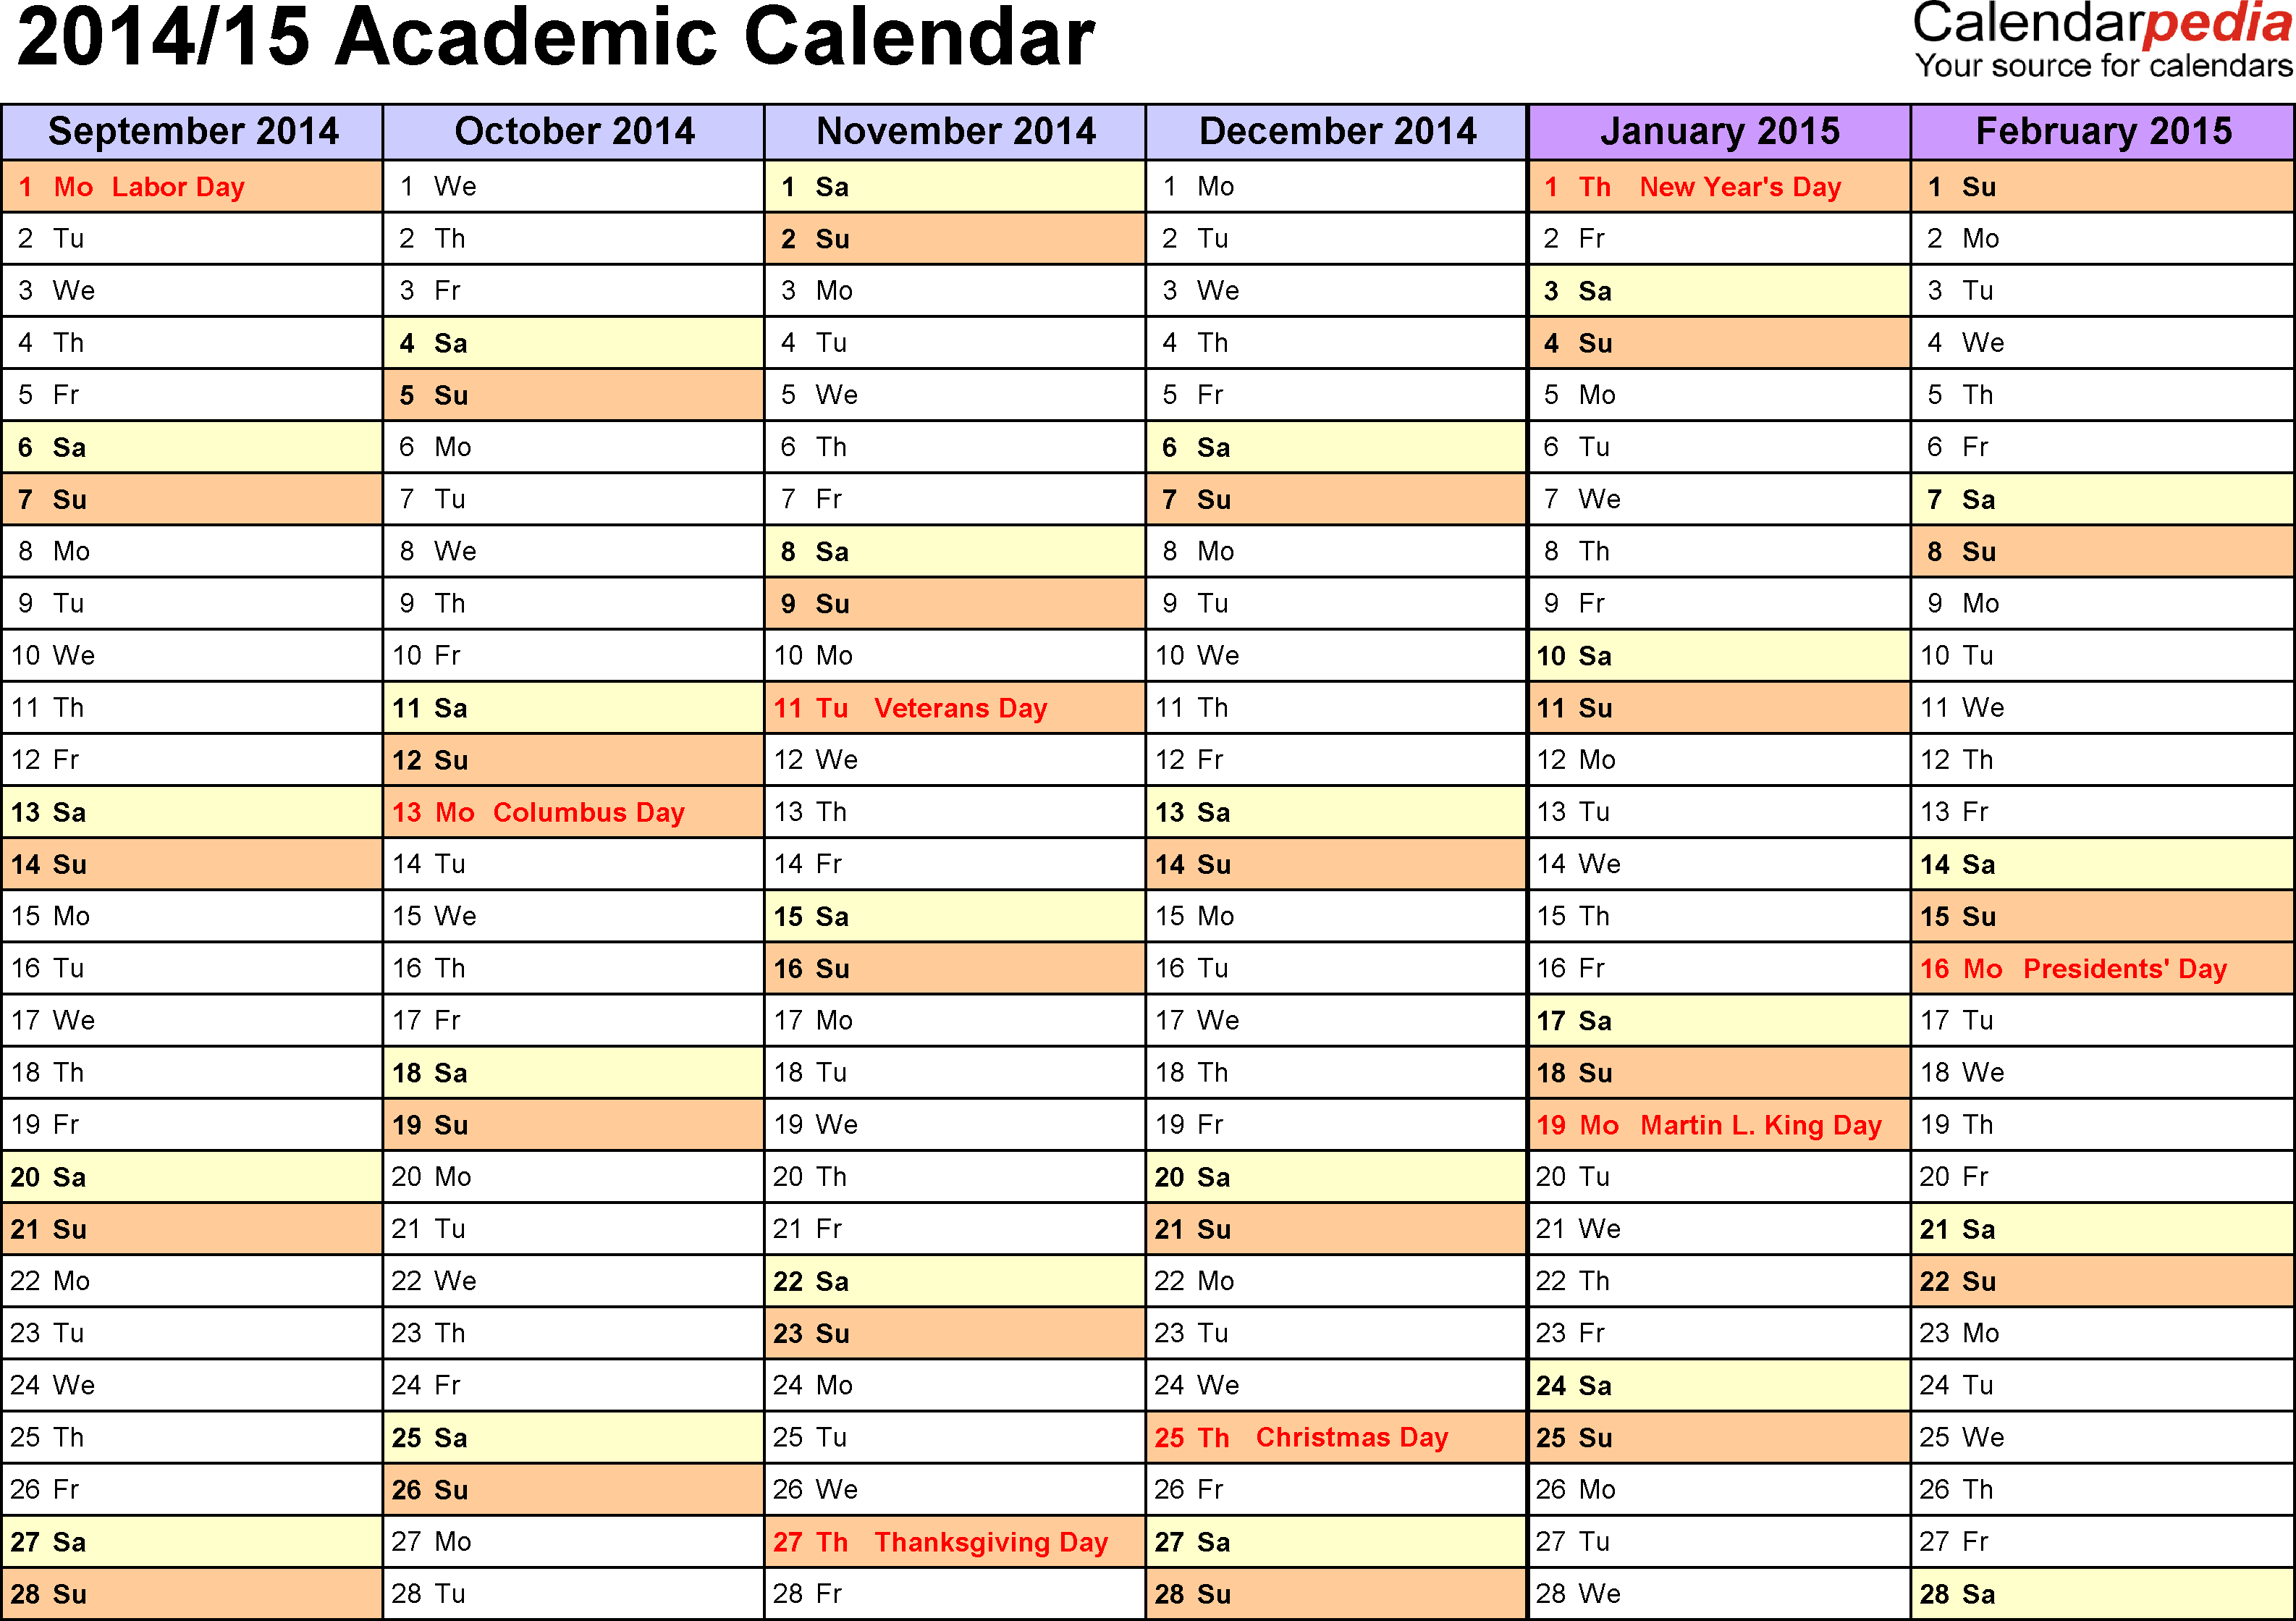 Download Template 2: Academic calendar 2014/15 for Microsoft Word (.docx file), landscape, 2 pages, half a year per page